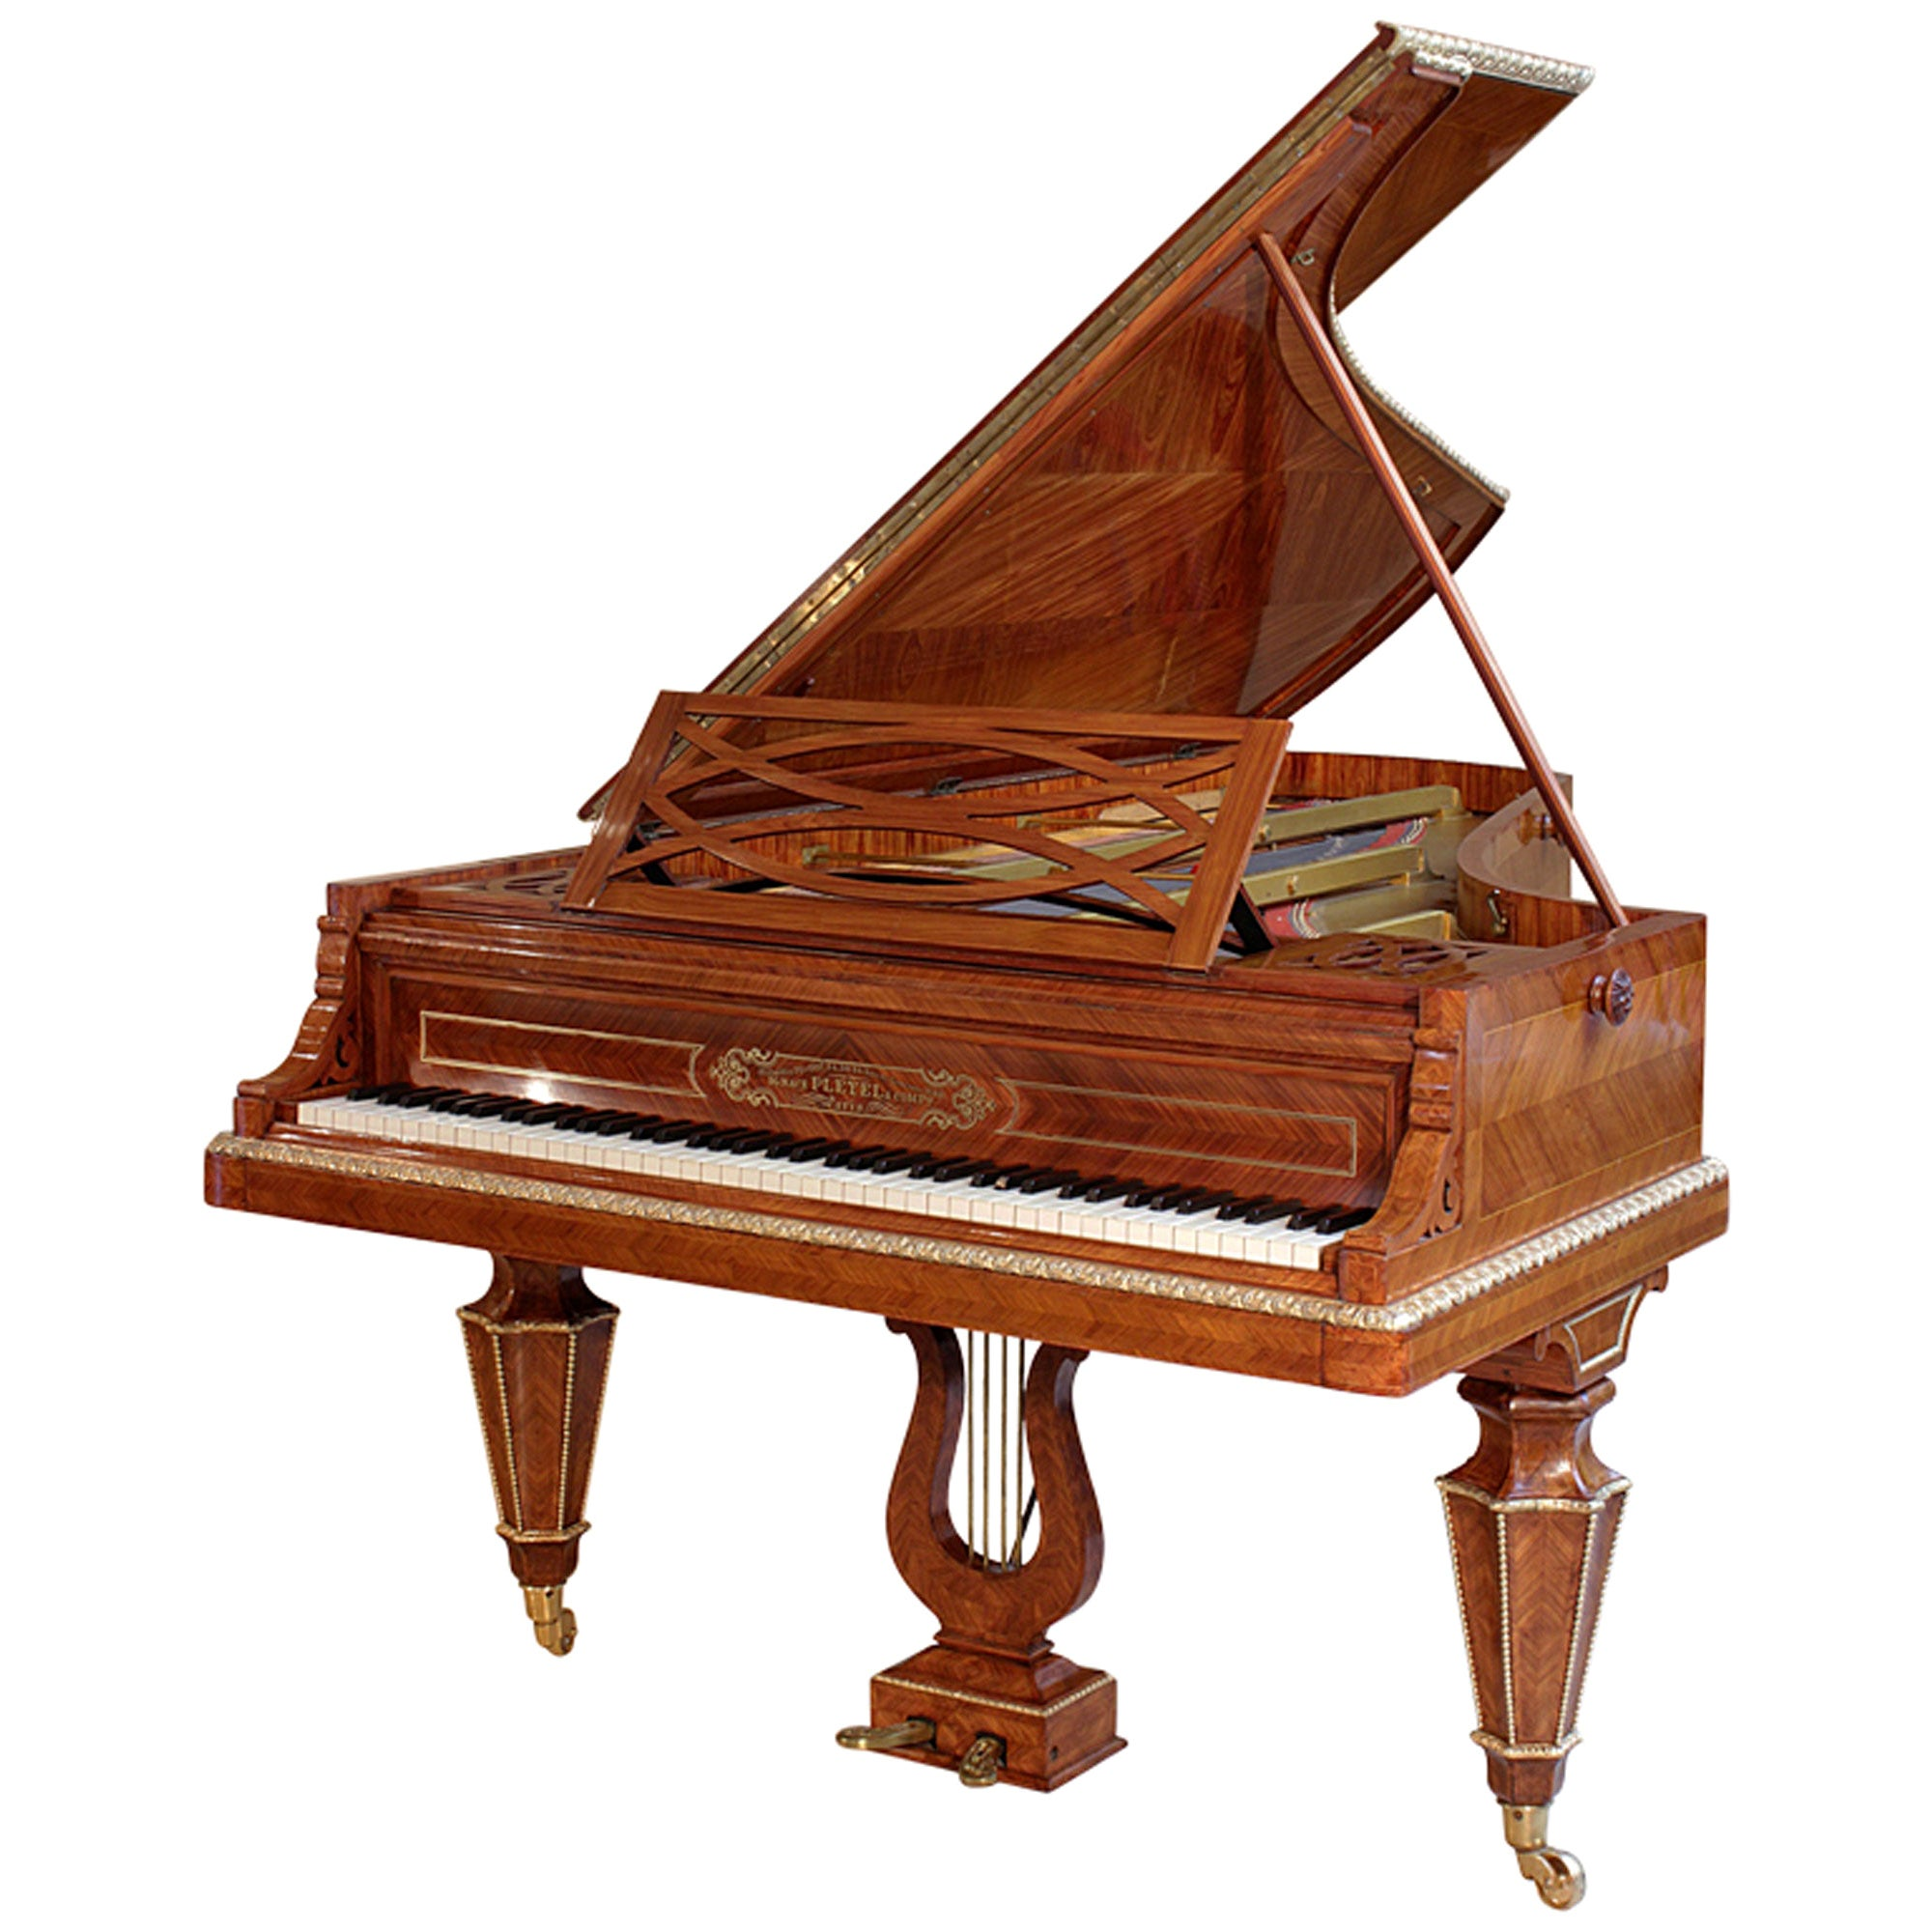 French Mid-19th Century Concert Grand Piano Signed Pleyel